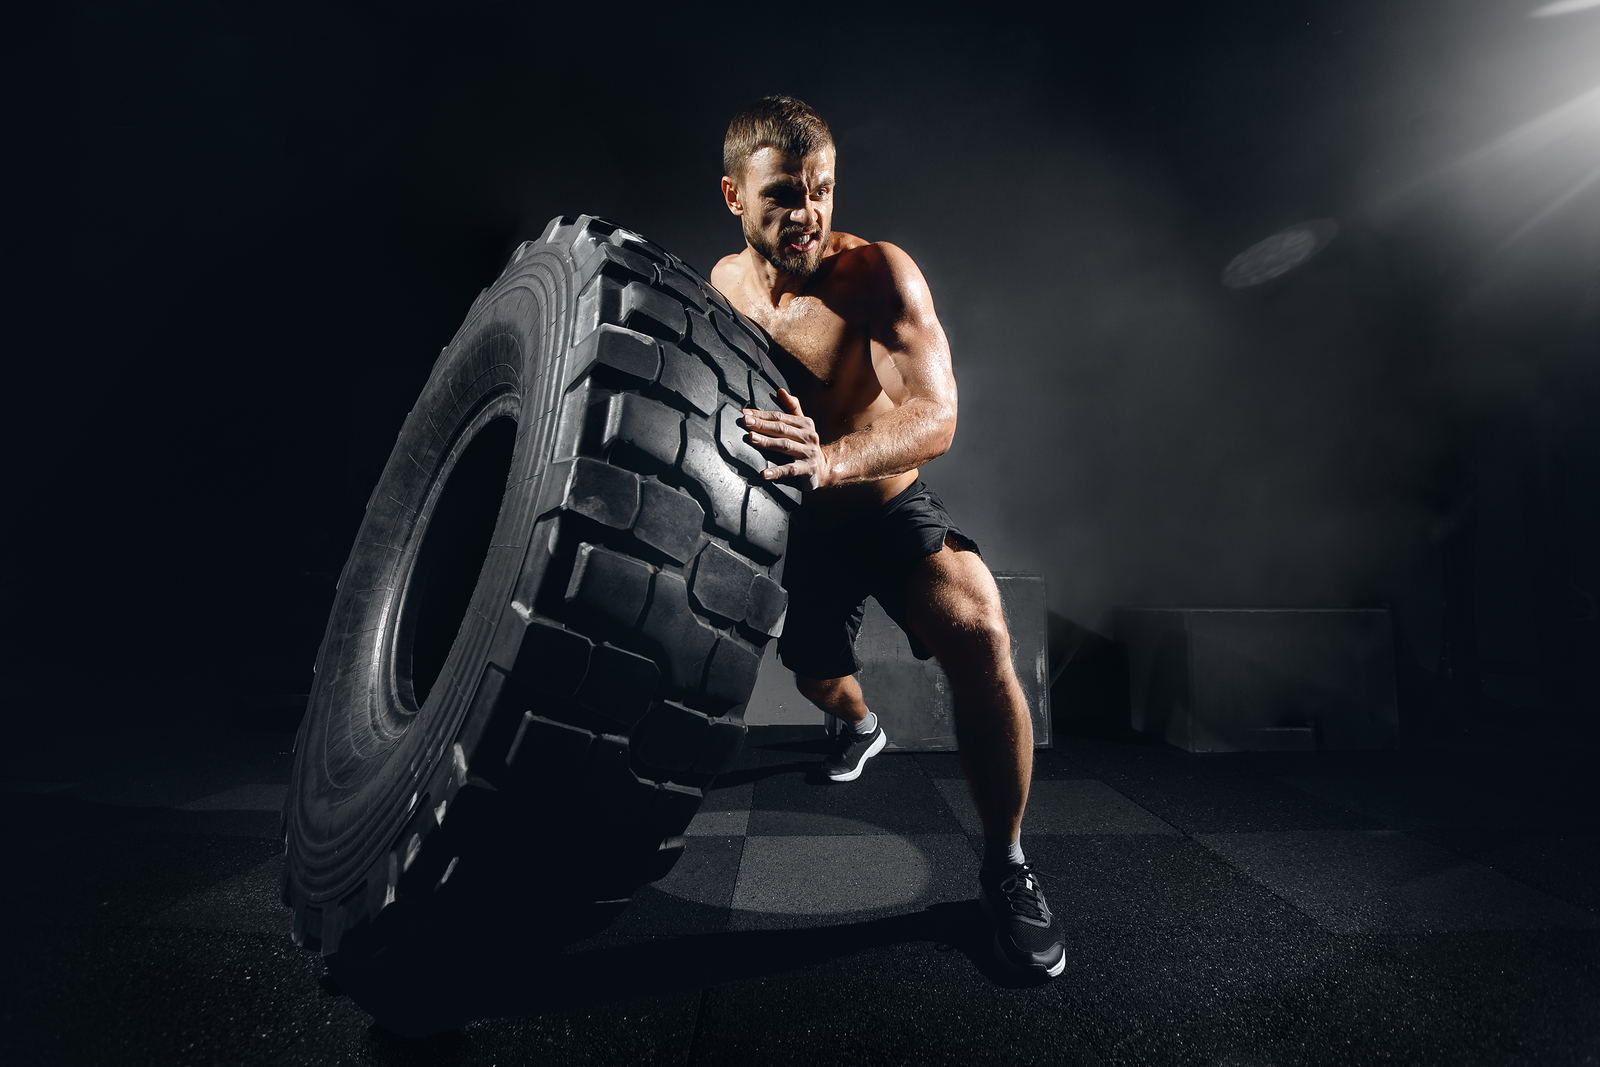 Muscular Fitness Shirtless Man Moving Large Tire In Gym Fitness